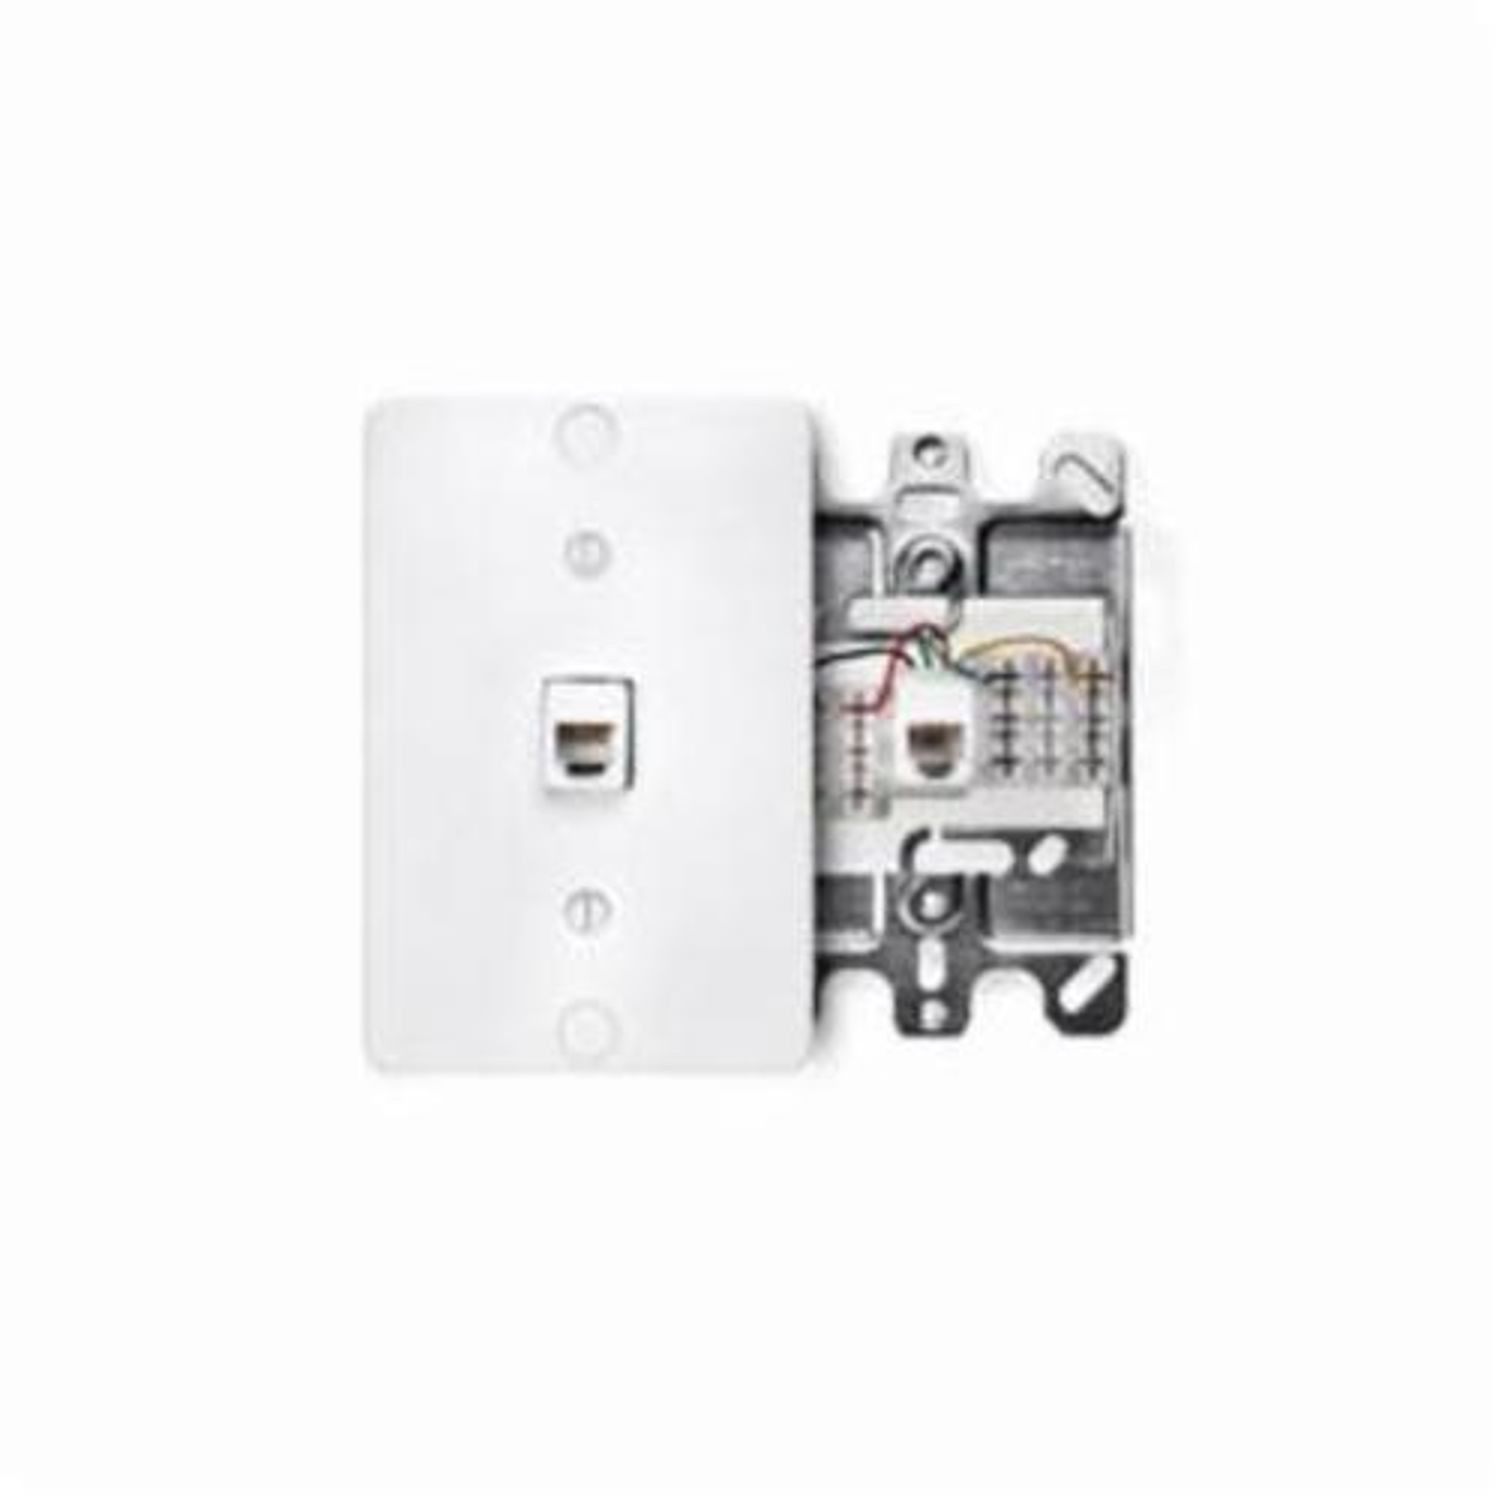 hight resolution of leviton 40253 w 110 style modular quick connect telephone wall phone jack with metal base 1 gang 3 in w plastic wall mount